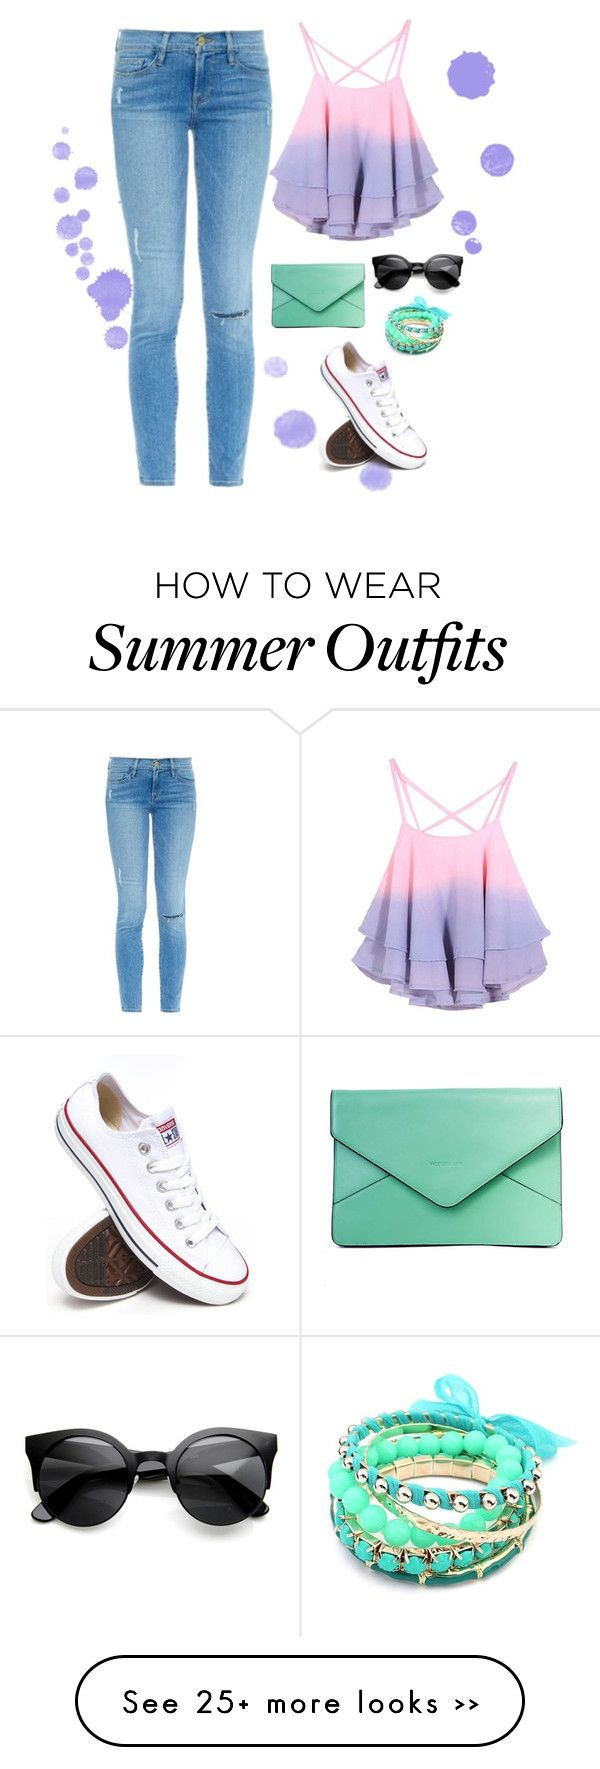 """Casual Summer Outfit"" by lizzywaters on Polyvore (Top Design Fashion)"